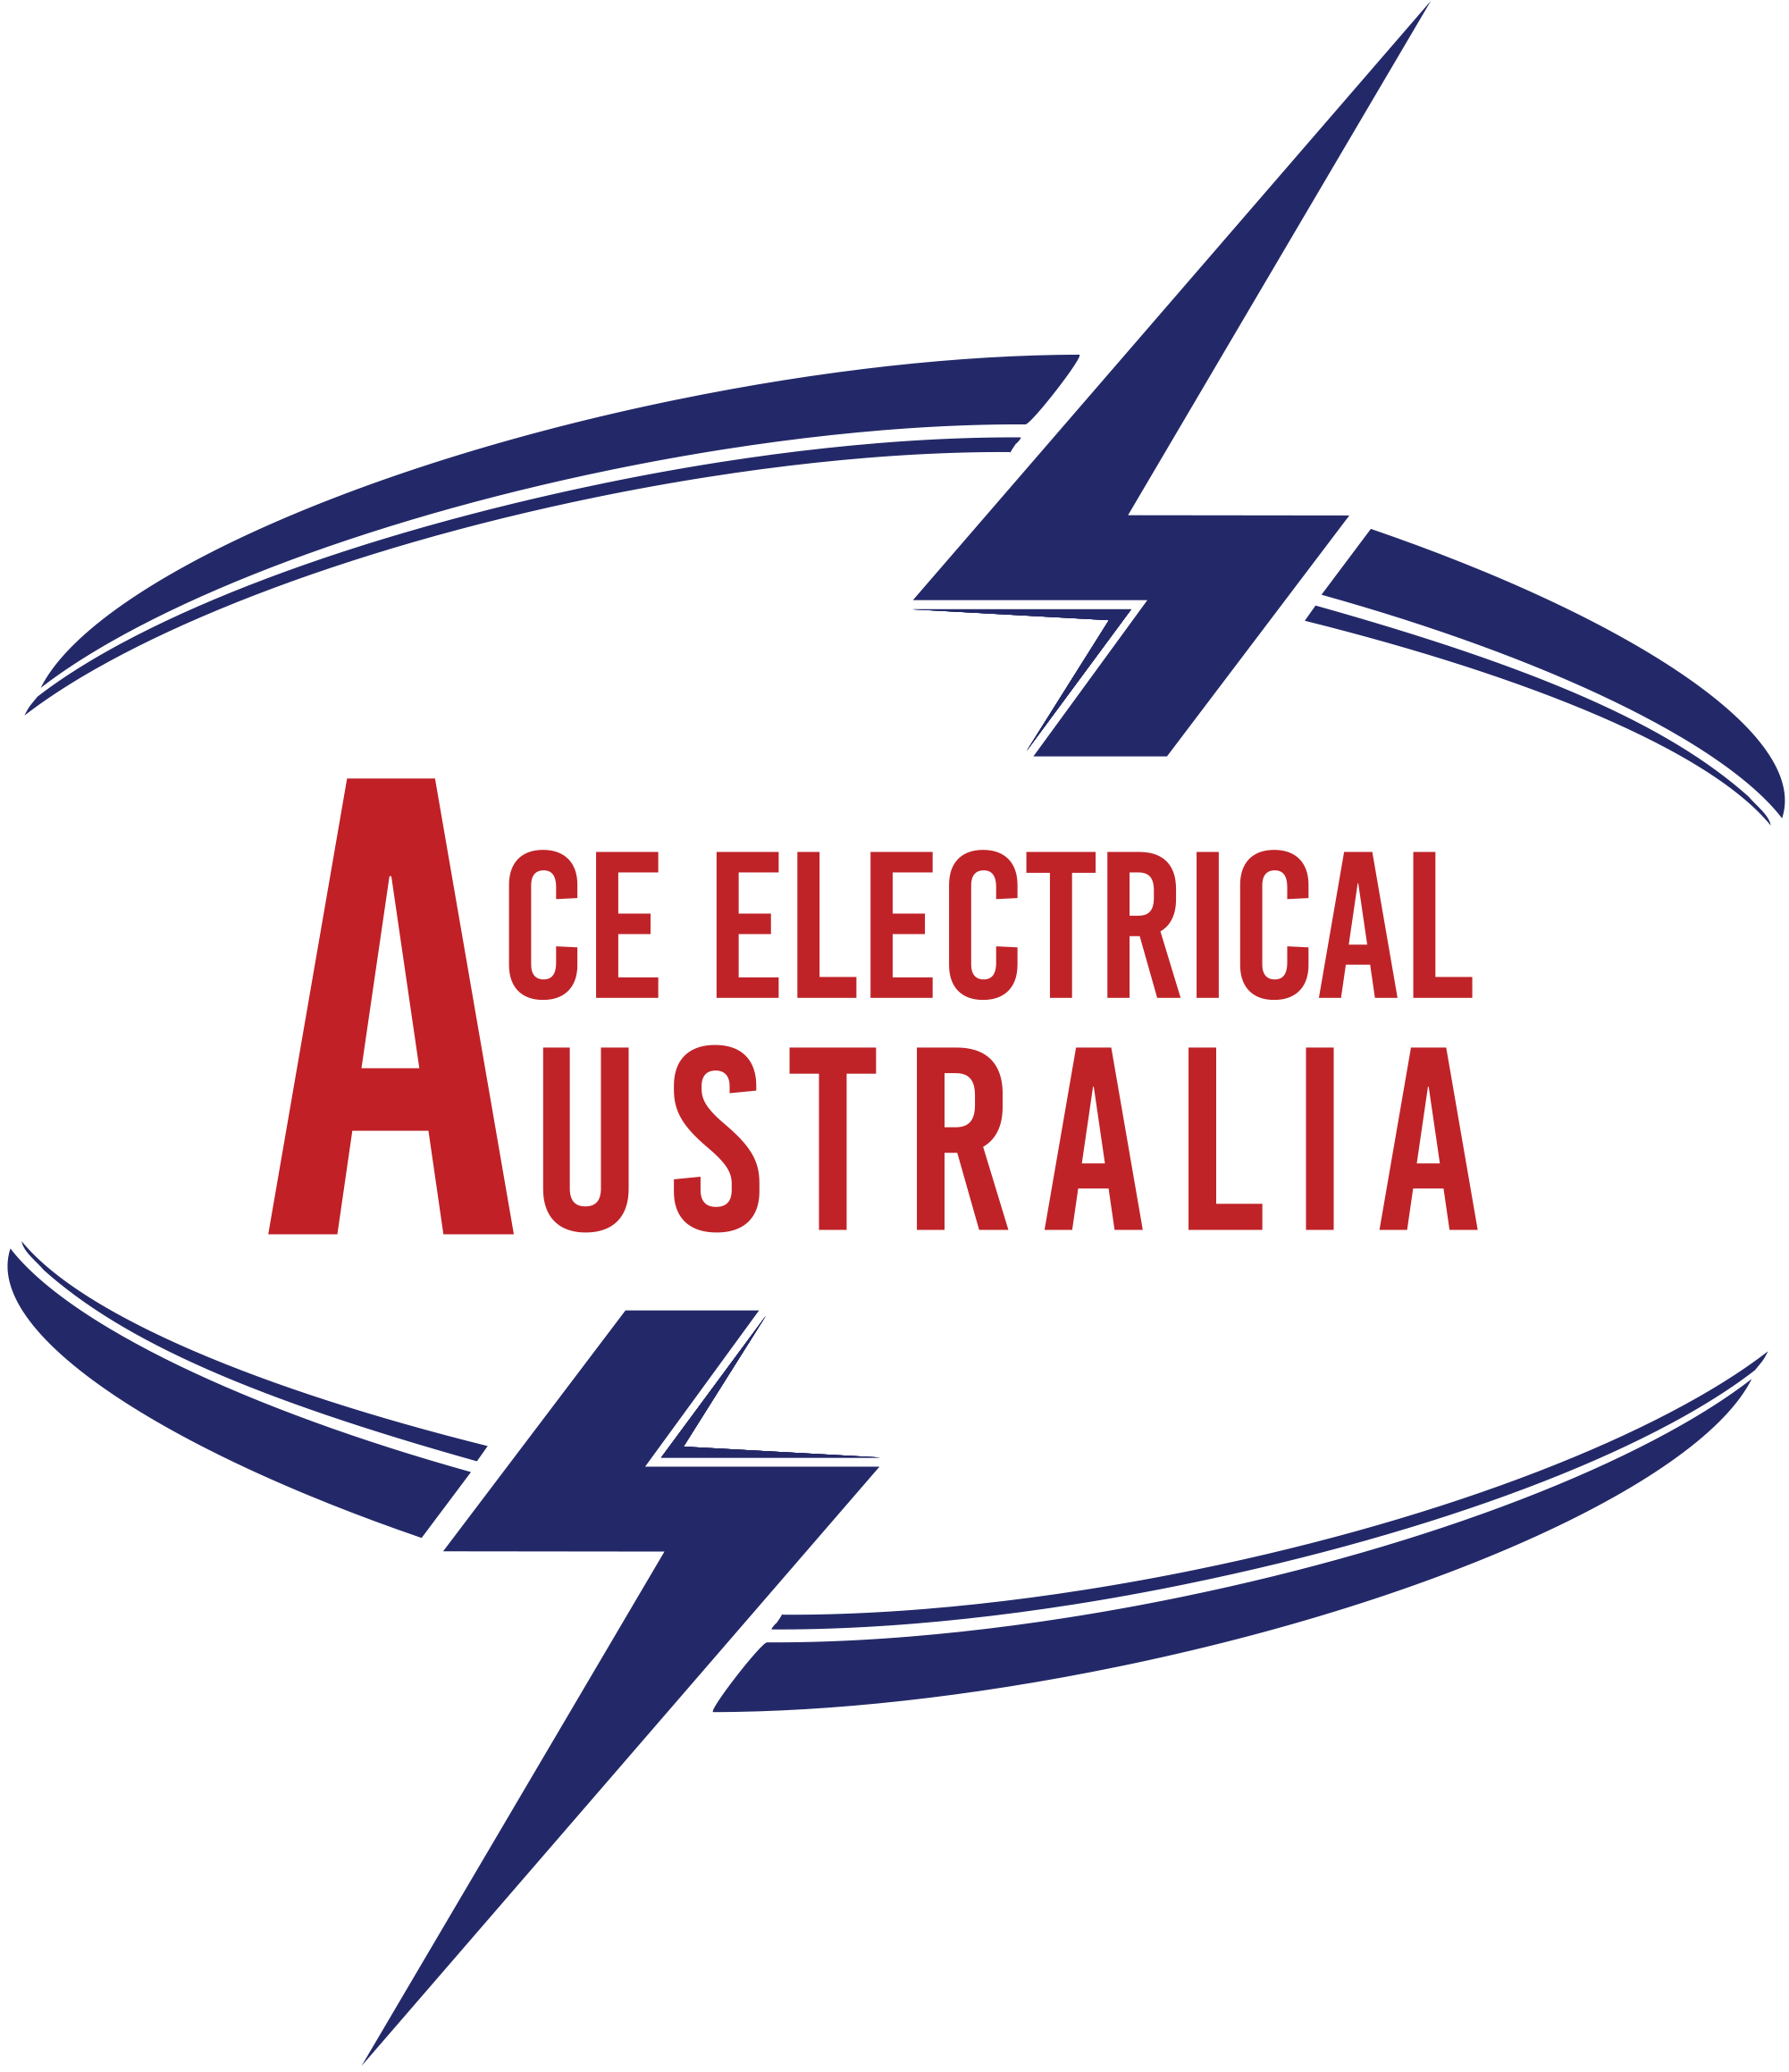 Electrical Clipart Electrical Logo  Electrical Electrical Logo Transparent Free For Download On